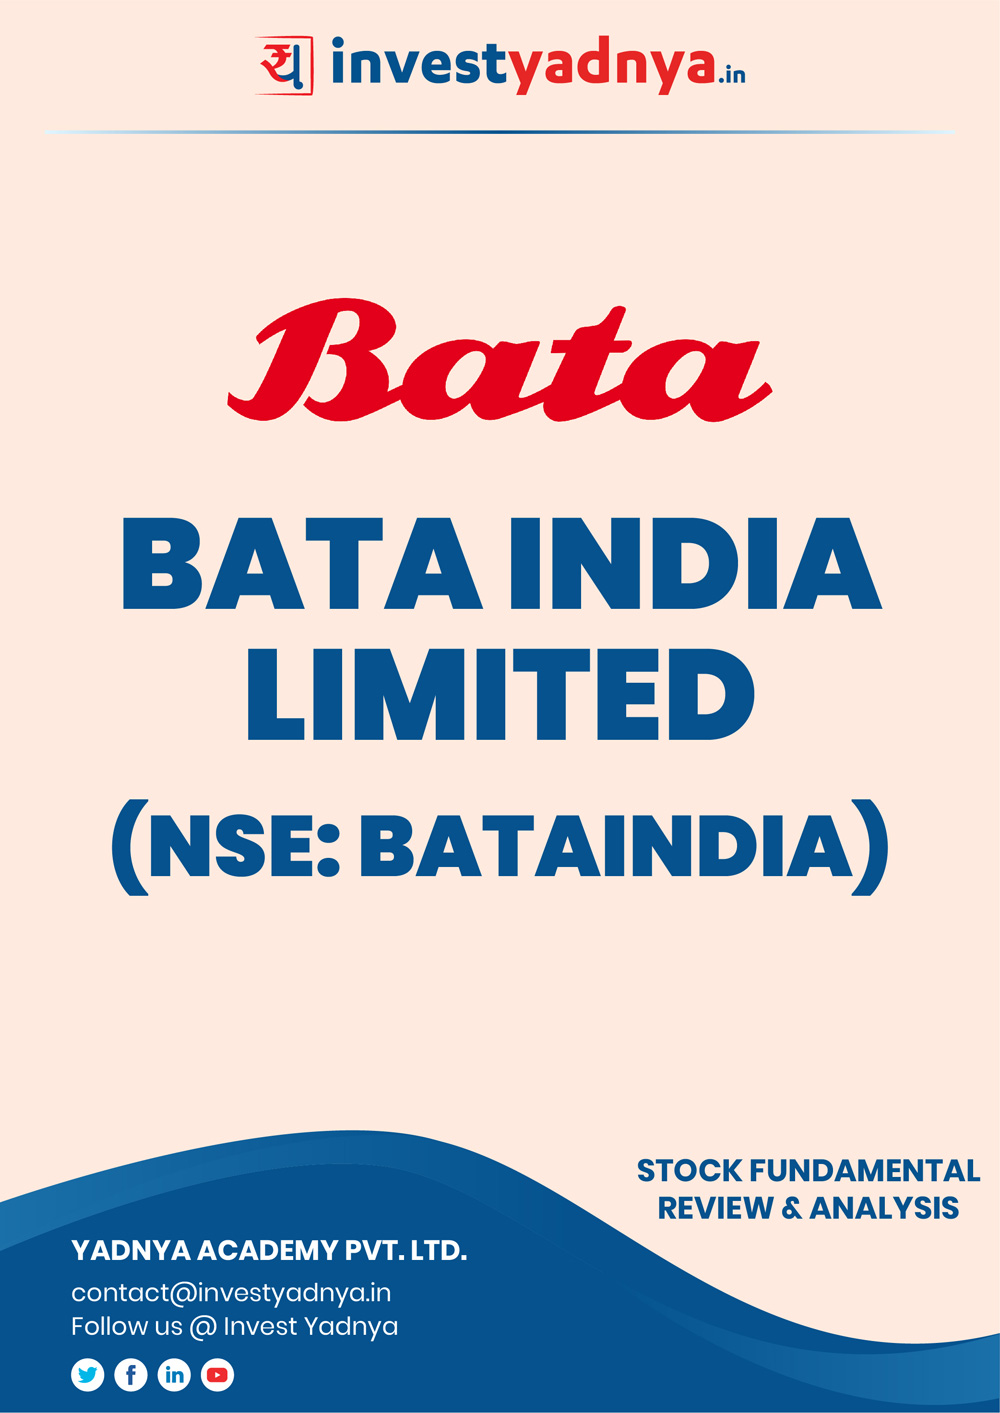 This e-book contains in-depth fundamental analysis of Bata India considering both Financial and Equity Research Parameters. It reviews the company, industry competitors, shareholding pattern, financials, and annual performance. ✔ Detailed Research ✔ Quality Reports